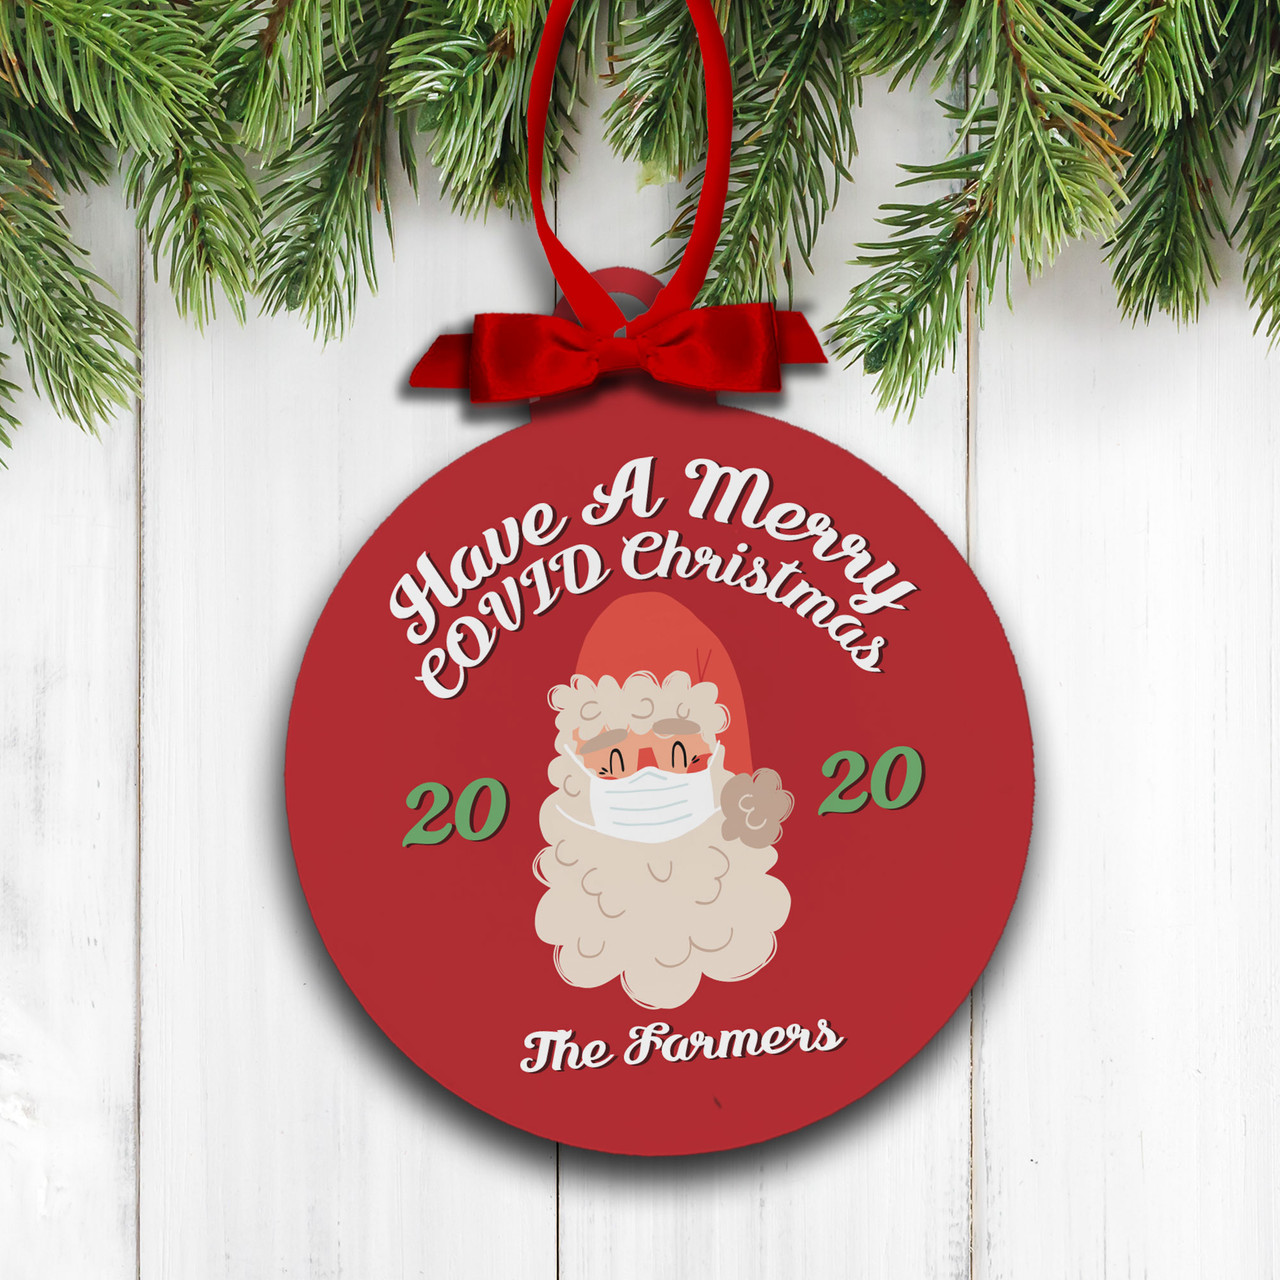 christmas 2020 ornament masked santa covid christmas holiday ornament merry covid christmas 2020 holiday ornament